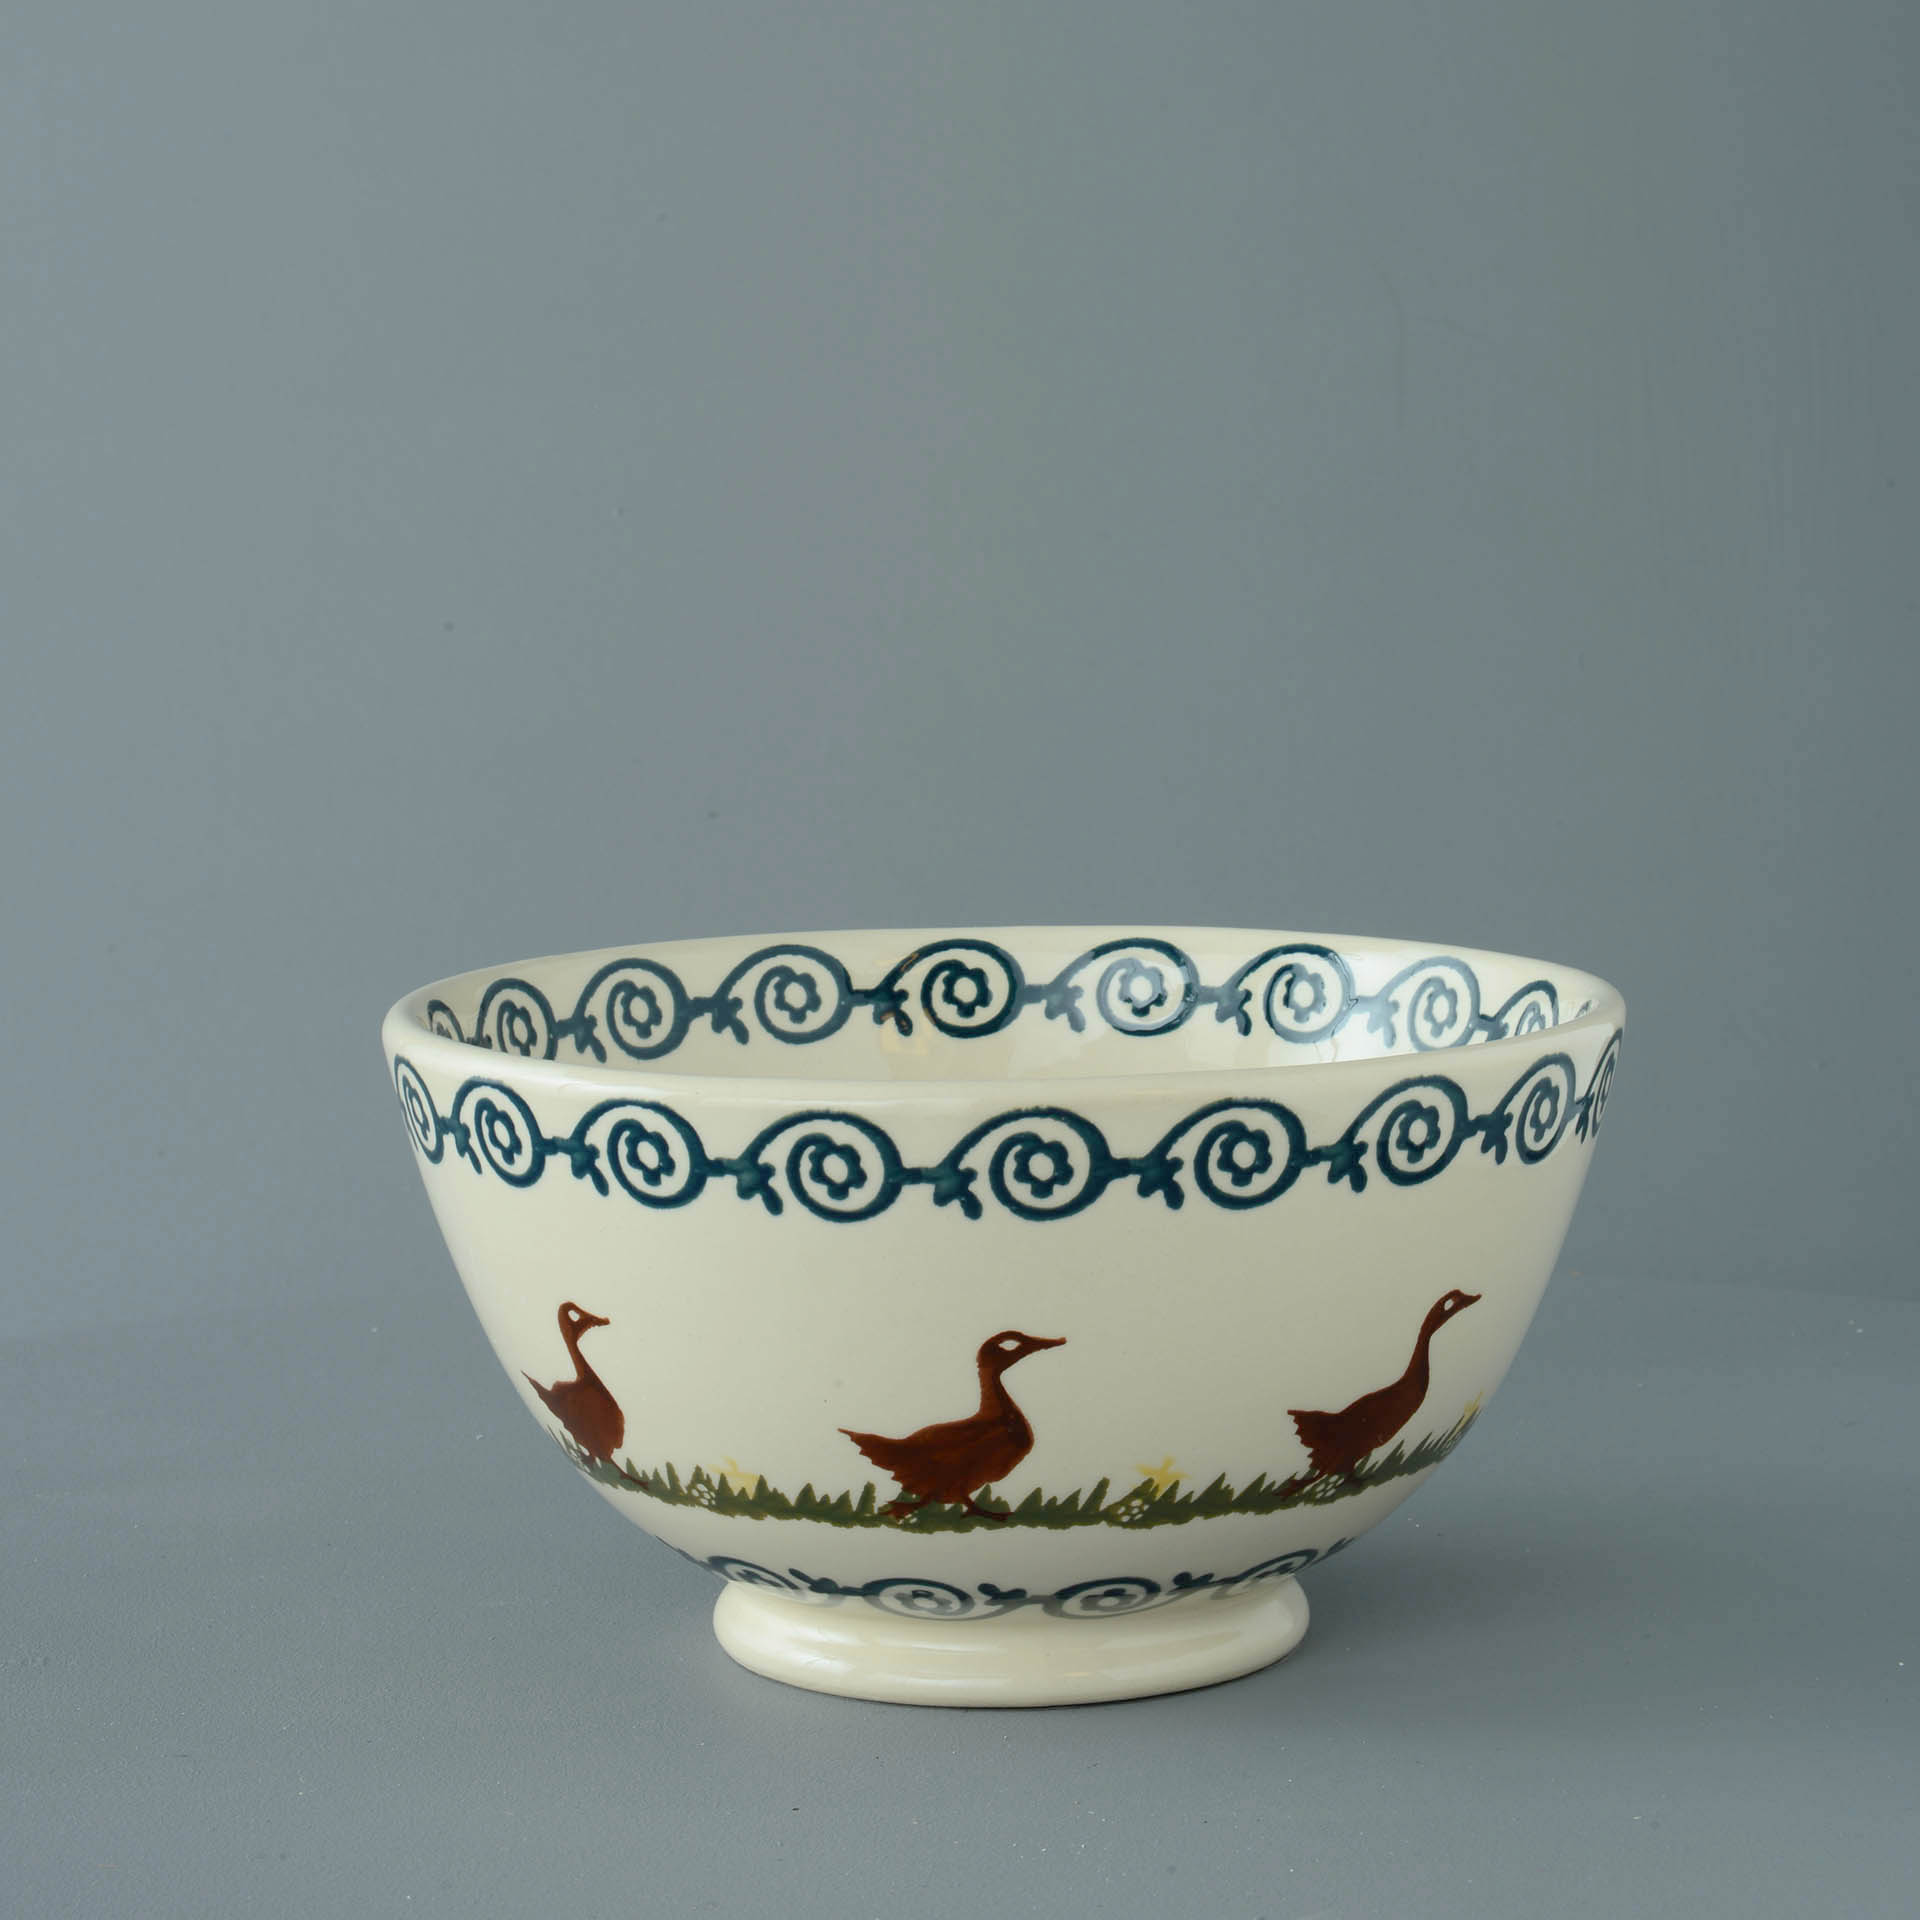 Ducks Serving Bowl 11 x 21.5cm